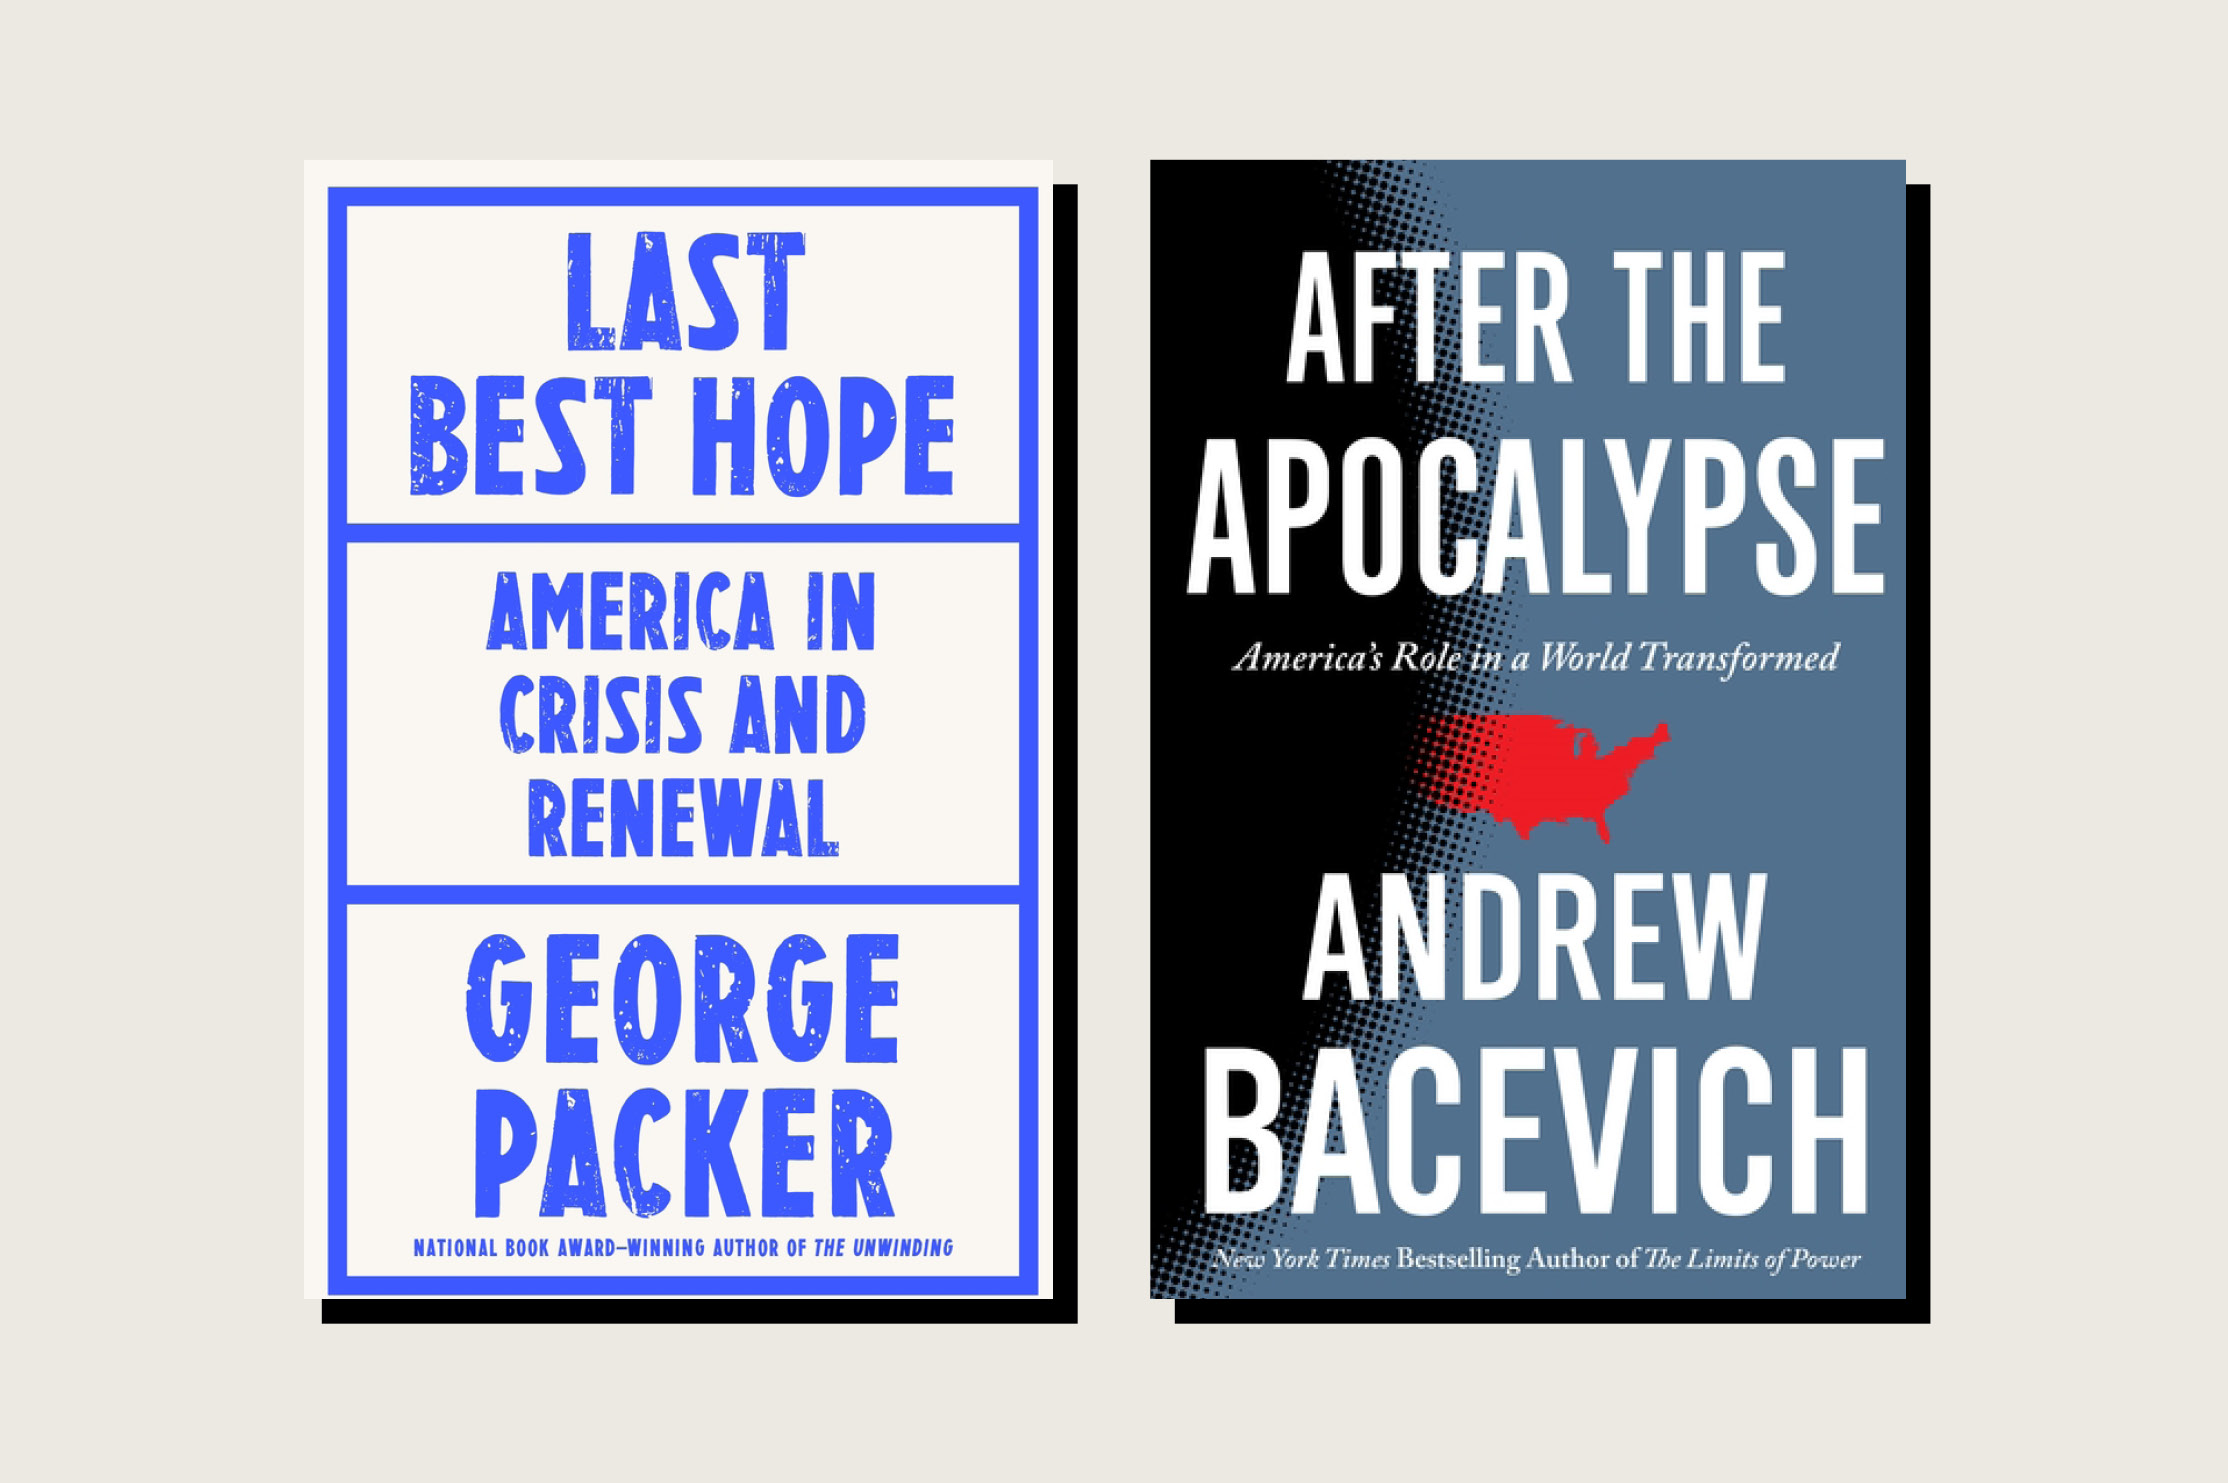 Last Best Hope: America in Crisis and Renewal, George Packer, Farrar, Straus and Giroux, 240 pp., , June 2021.<br>After the Apocalypse: America's Role in a World Transformed, Andrew Bacevich, Metropolitan Books, 224 pp., .99, June 2021